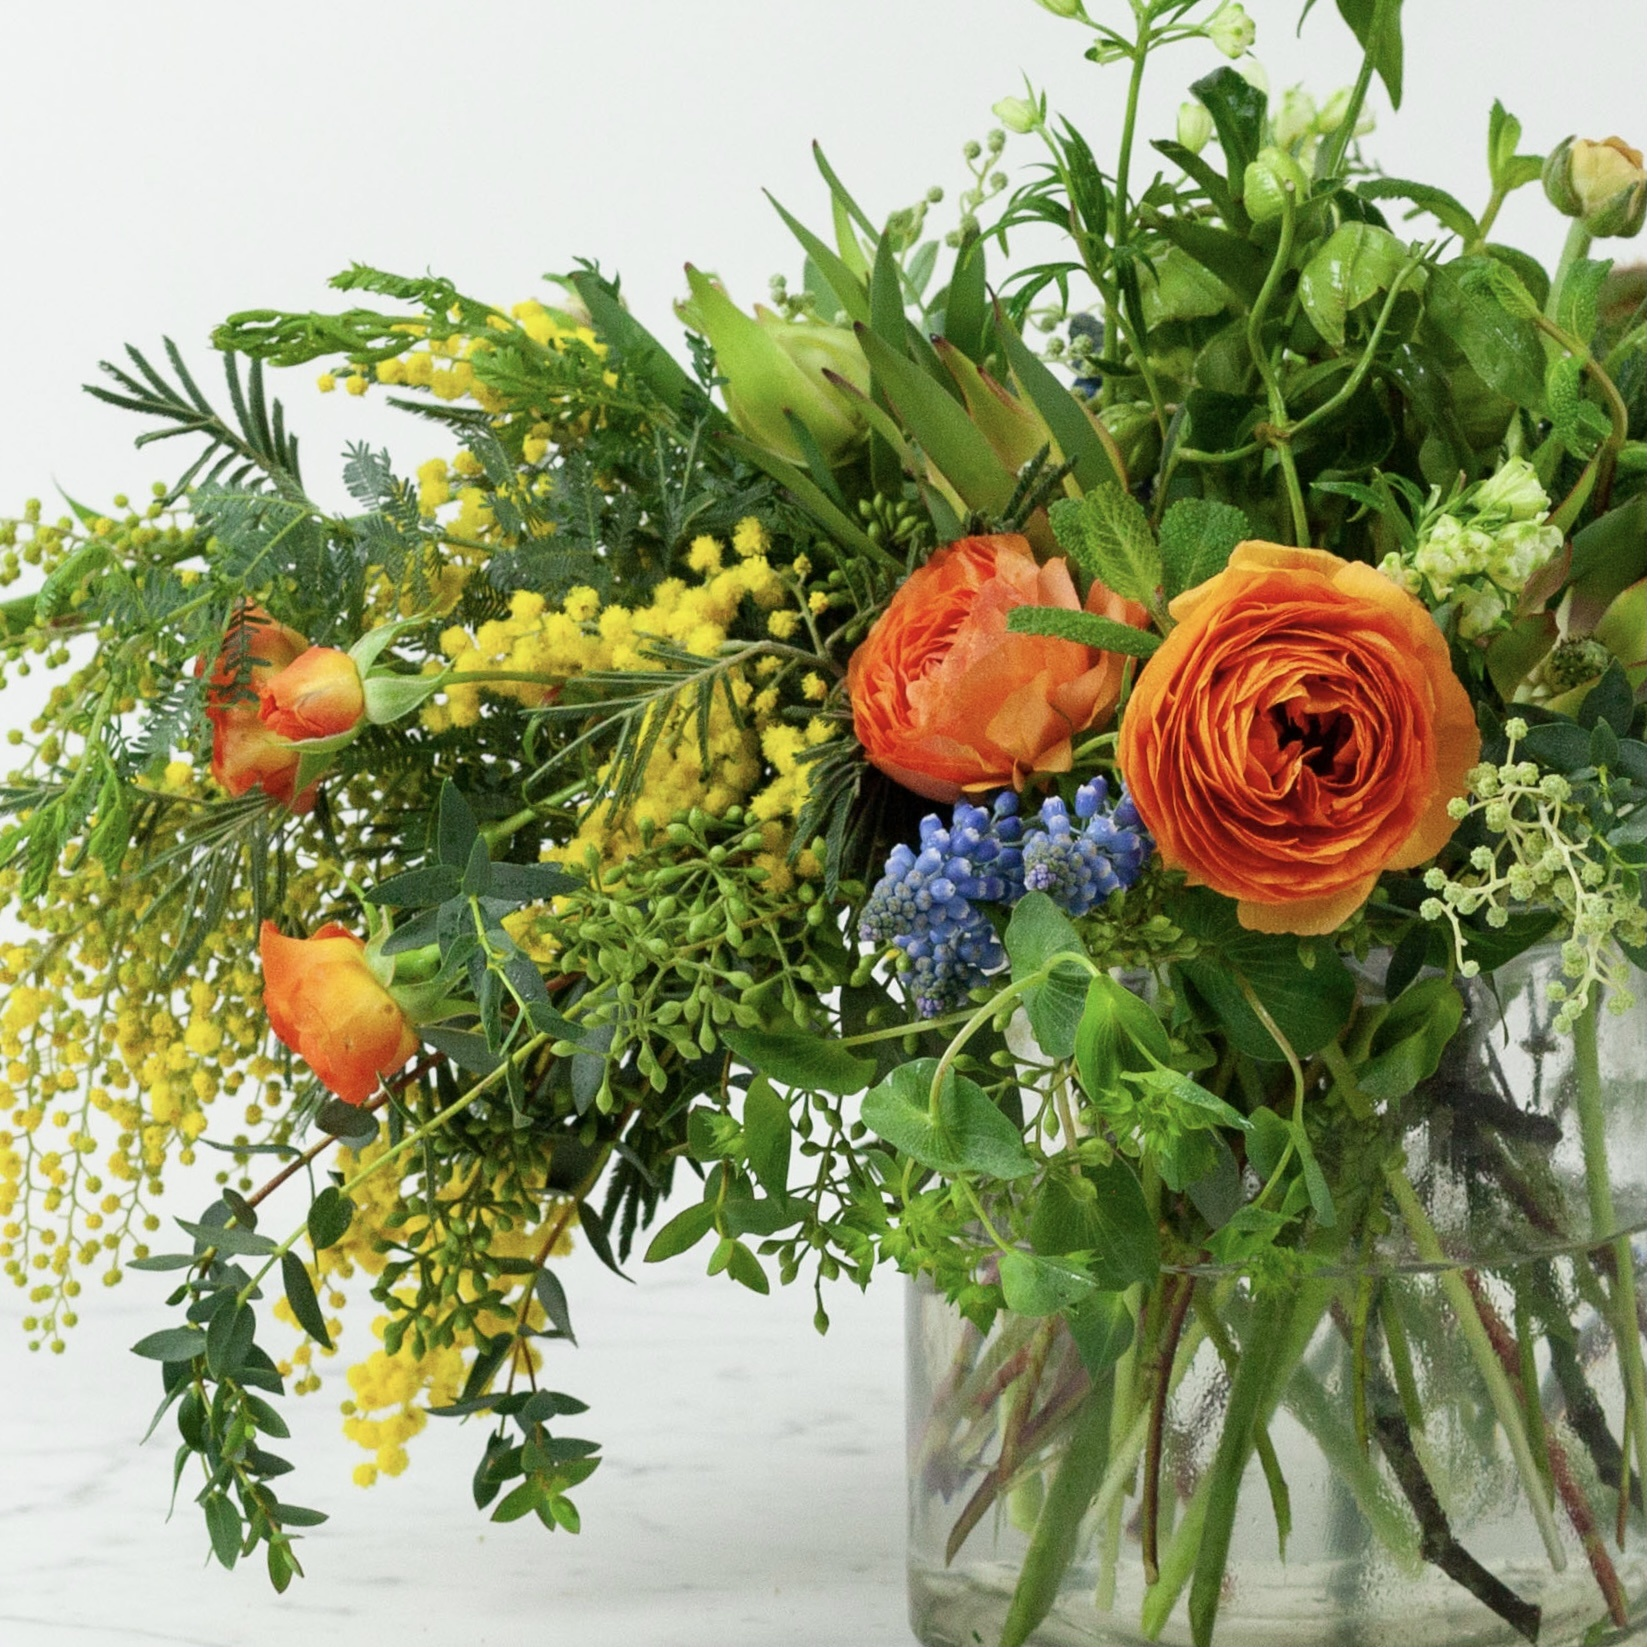 The Foundry Home Goods Foundry Classic Floral Bouquet in Recycled Glass Vase - Saturday 2/13 AM Pickup